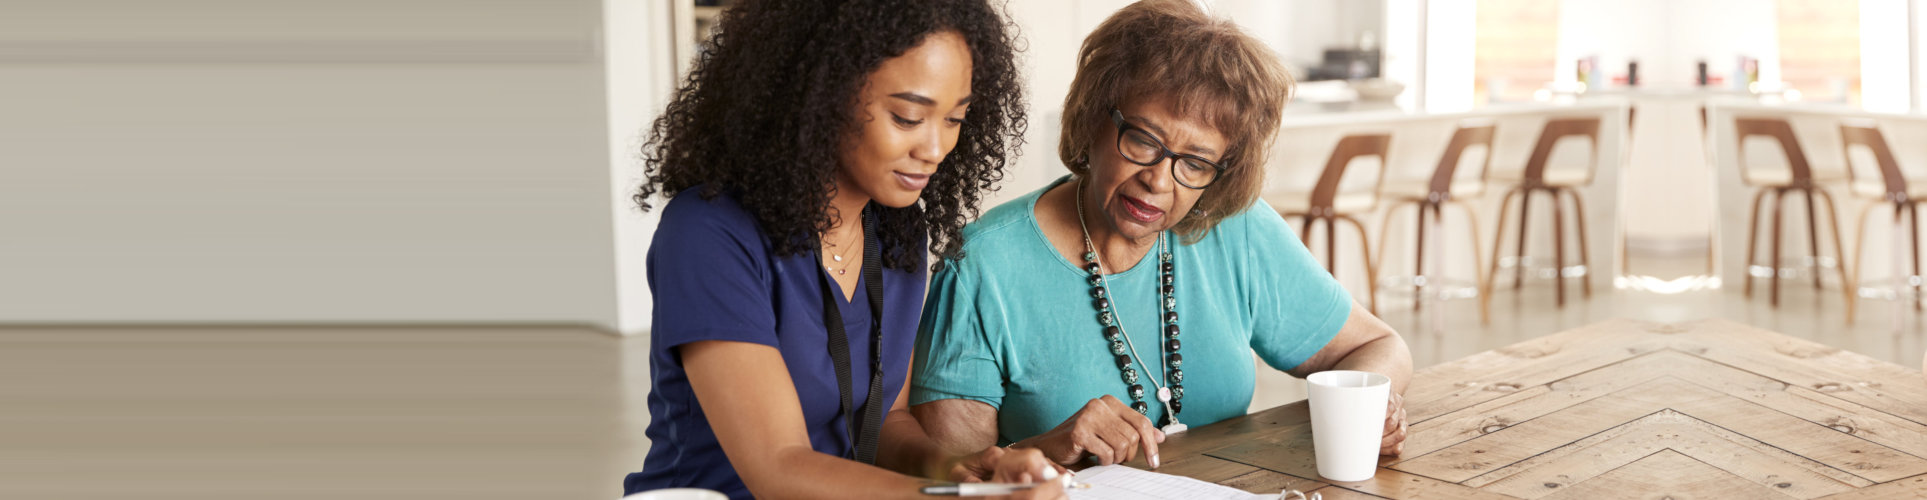 caregiver assisting the elder woman about the documents